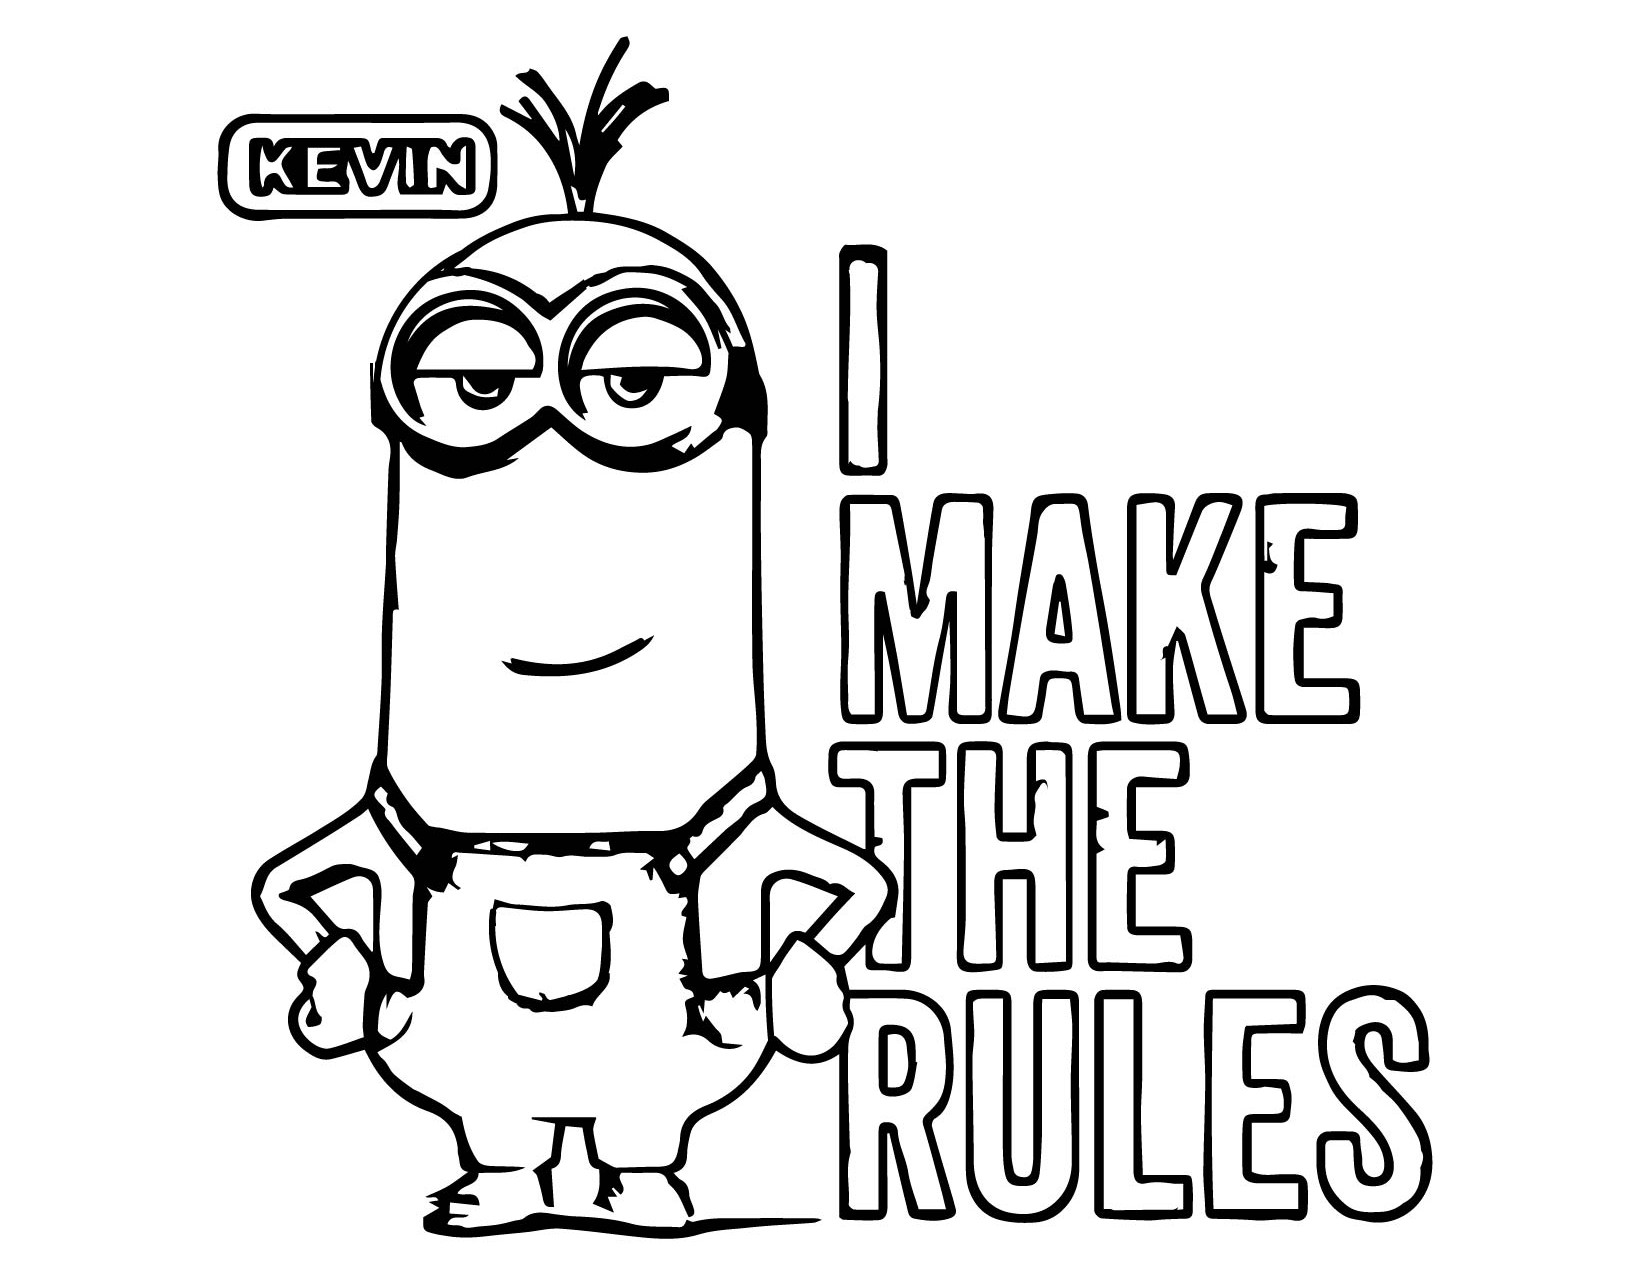 minion kevin coloring pages minions kevin stuart and dave coloring page free kevin coloring pages minion